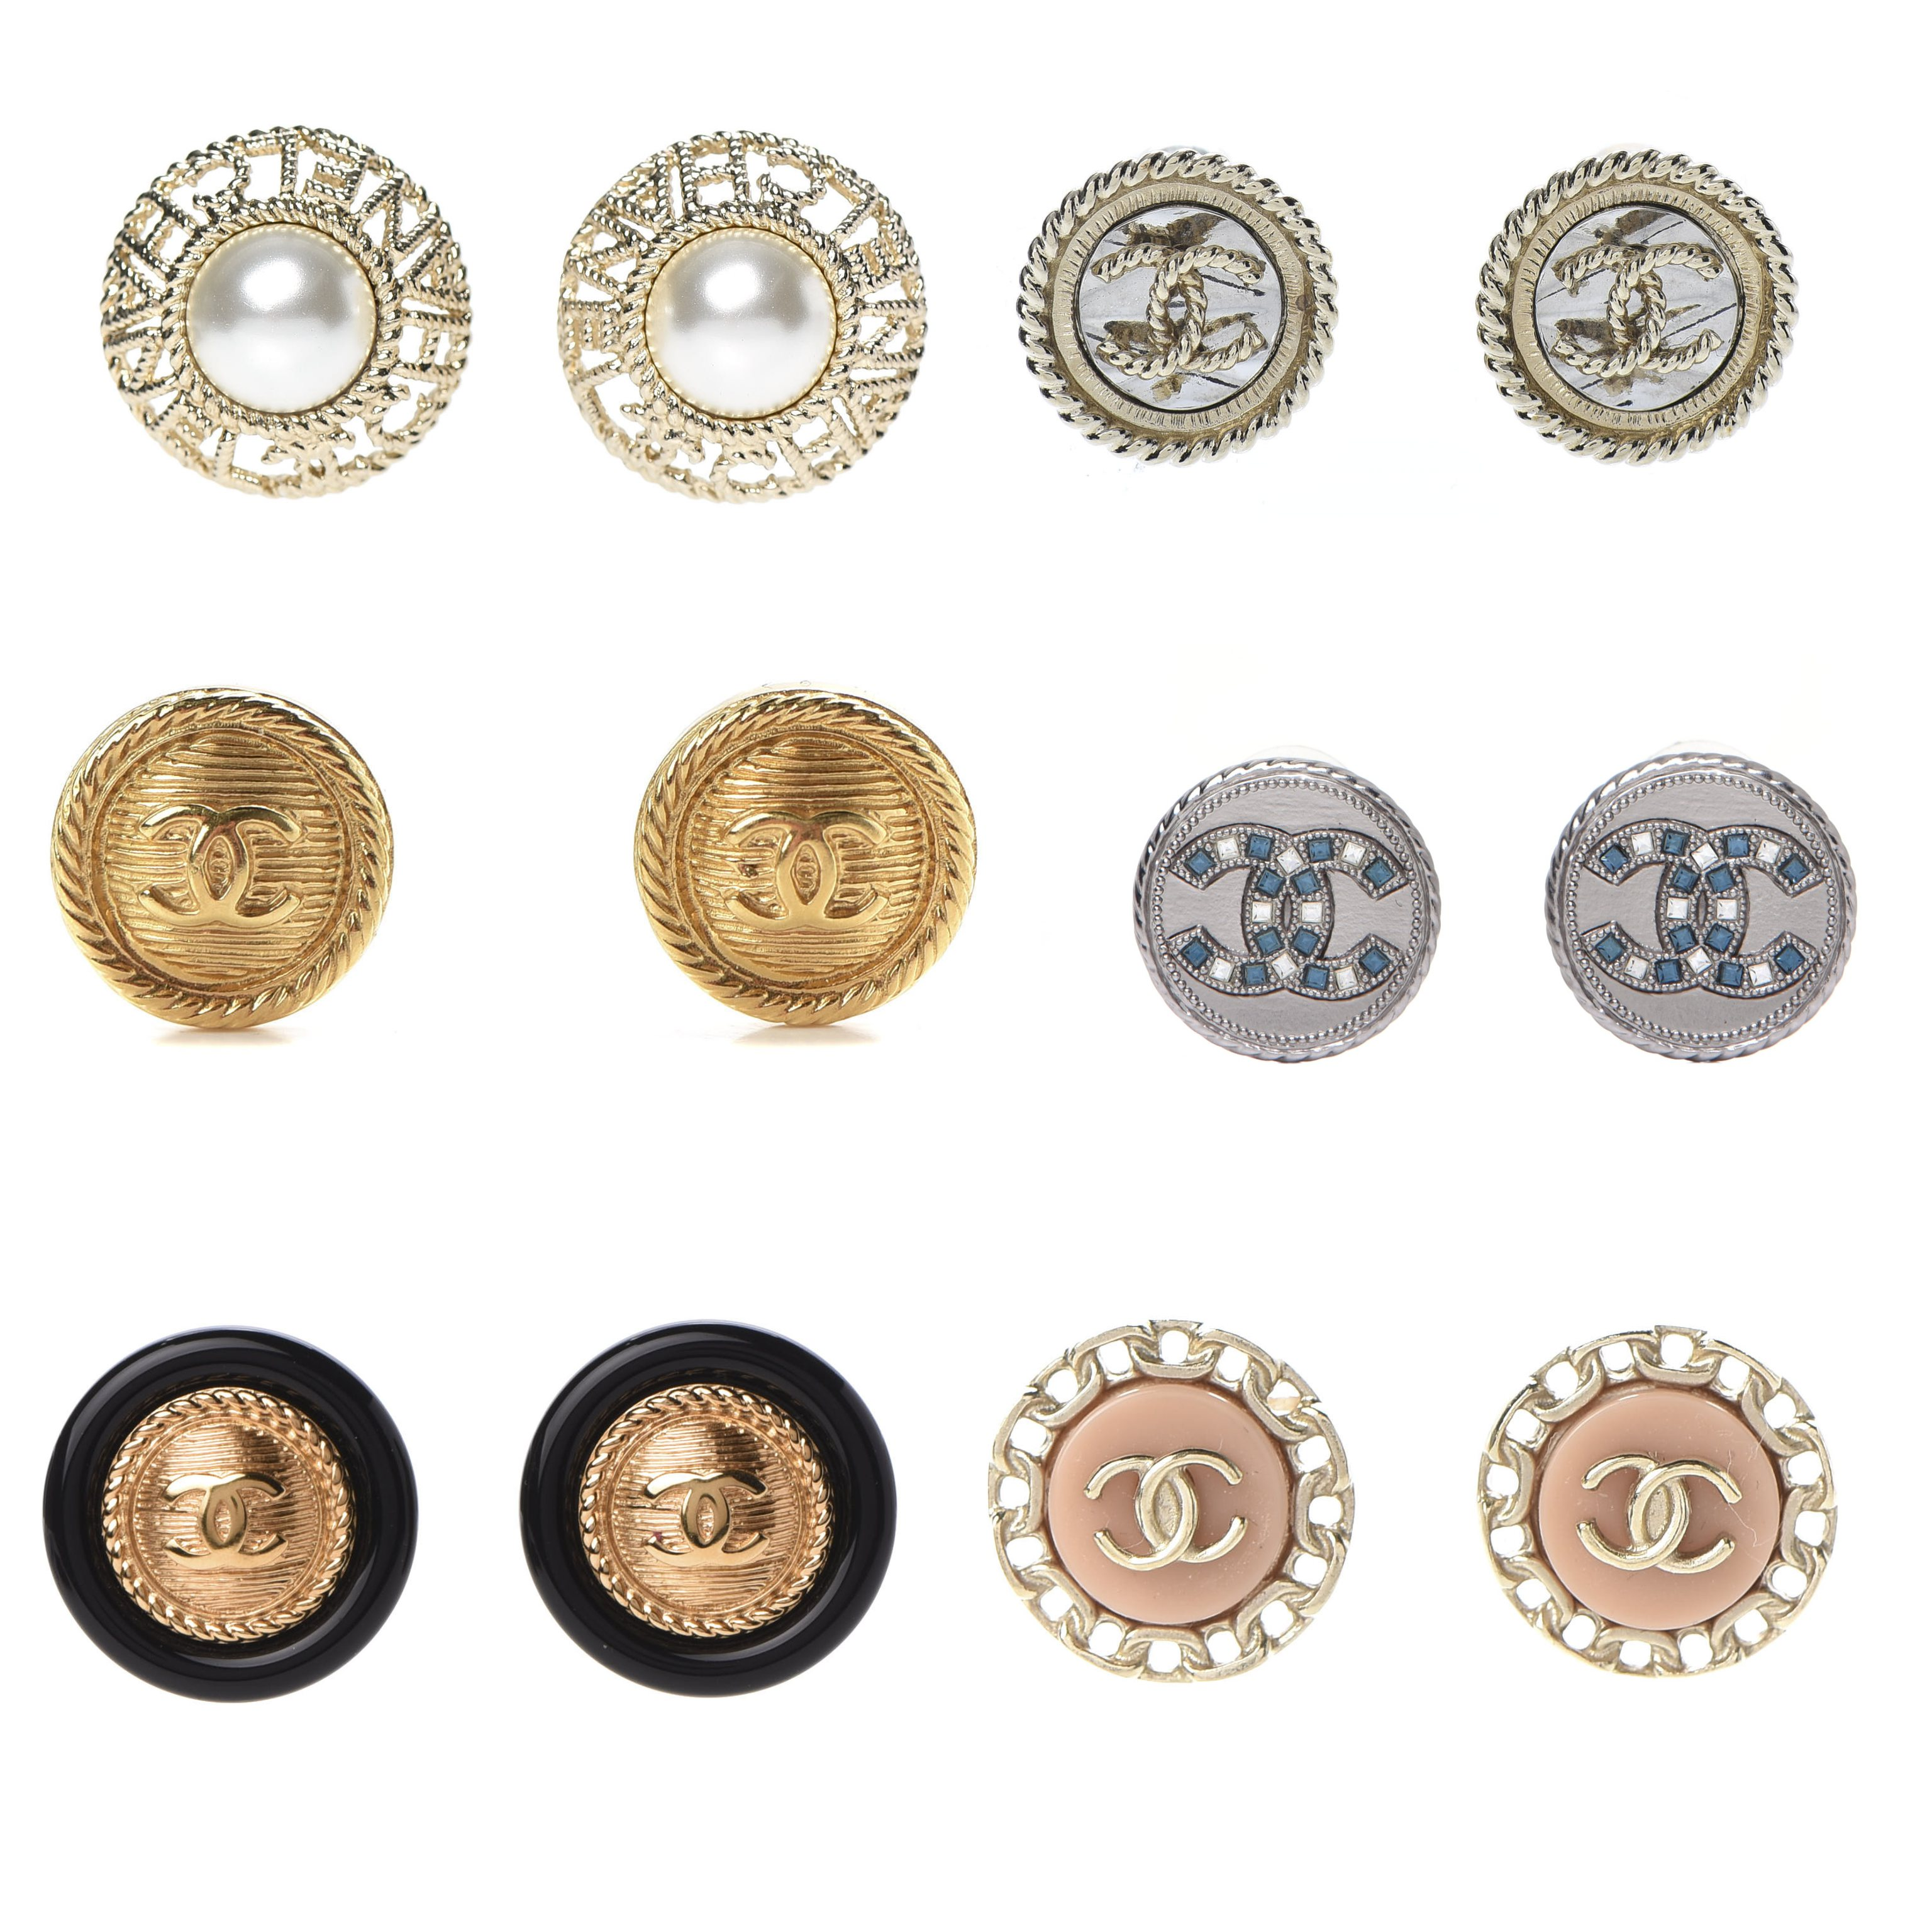 ChanelButtonEarrings_SydneysFashionDiary